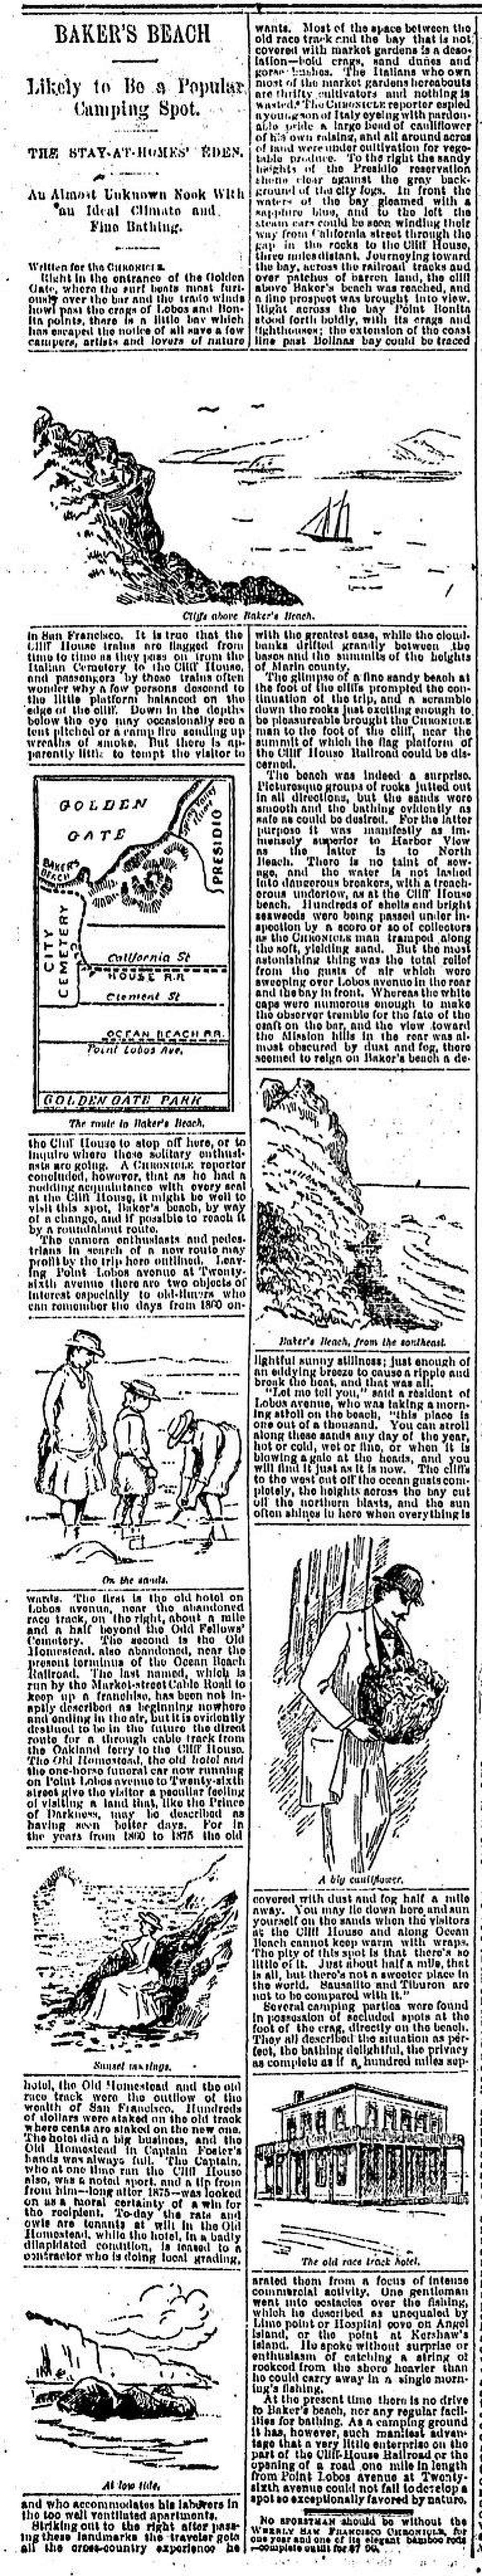 The charms of Baker's Beach are described in a Chronicle story on beaches on September 10, 1889